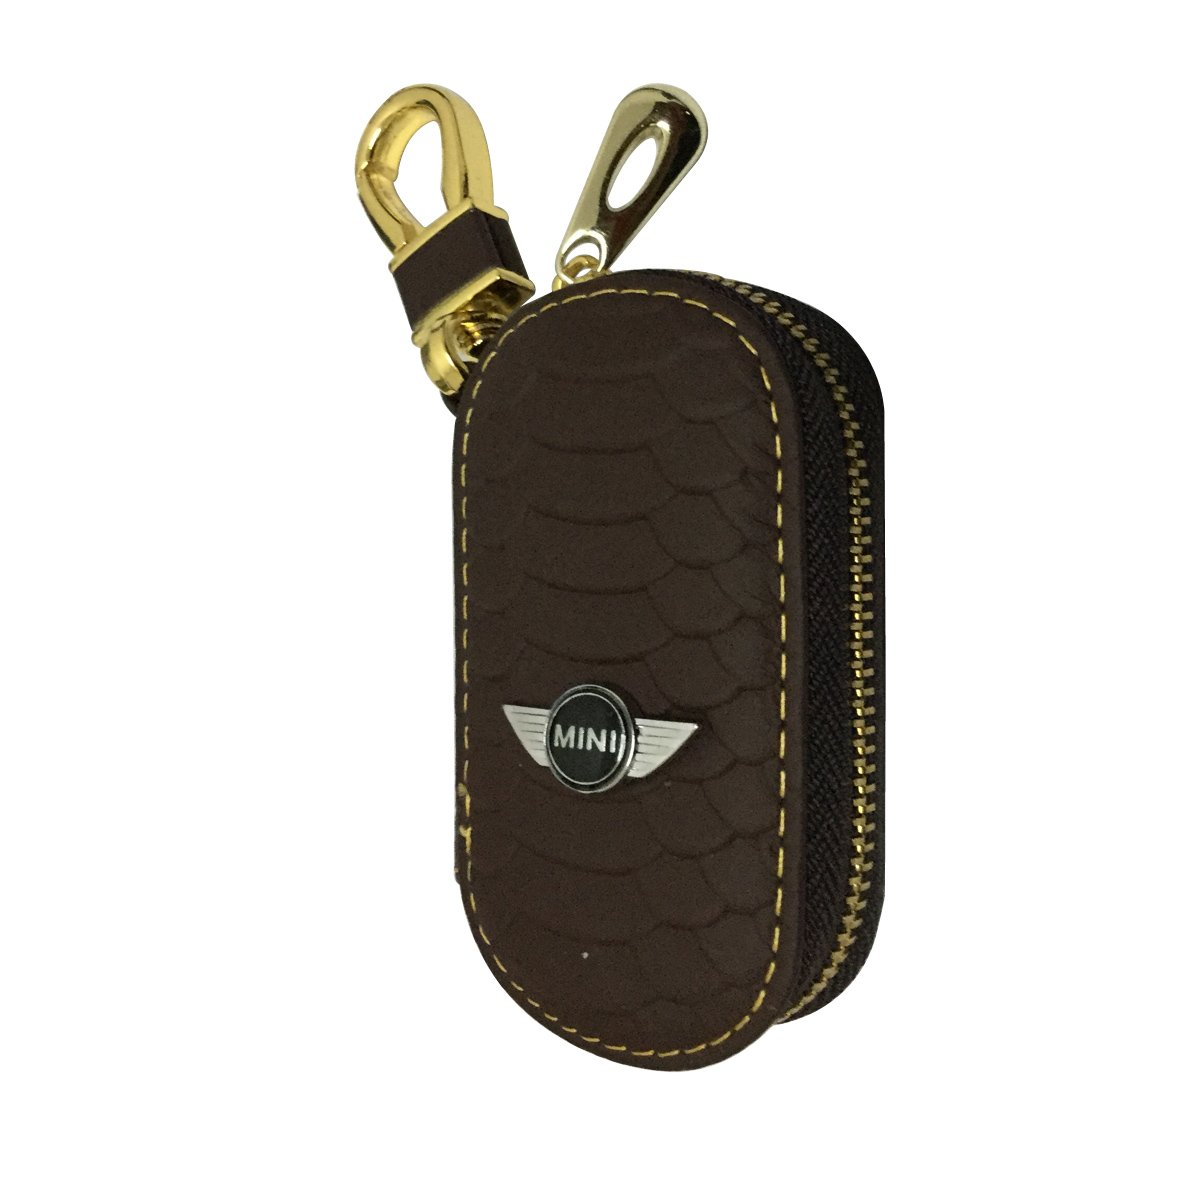 New 1pcs Black Leather Eye Drop Shape Car Key Wallet Zipper Case Keychain Coin Holder Metal Hook Bag Collection For Chevrolet Car Vehicle Auto Lover